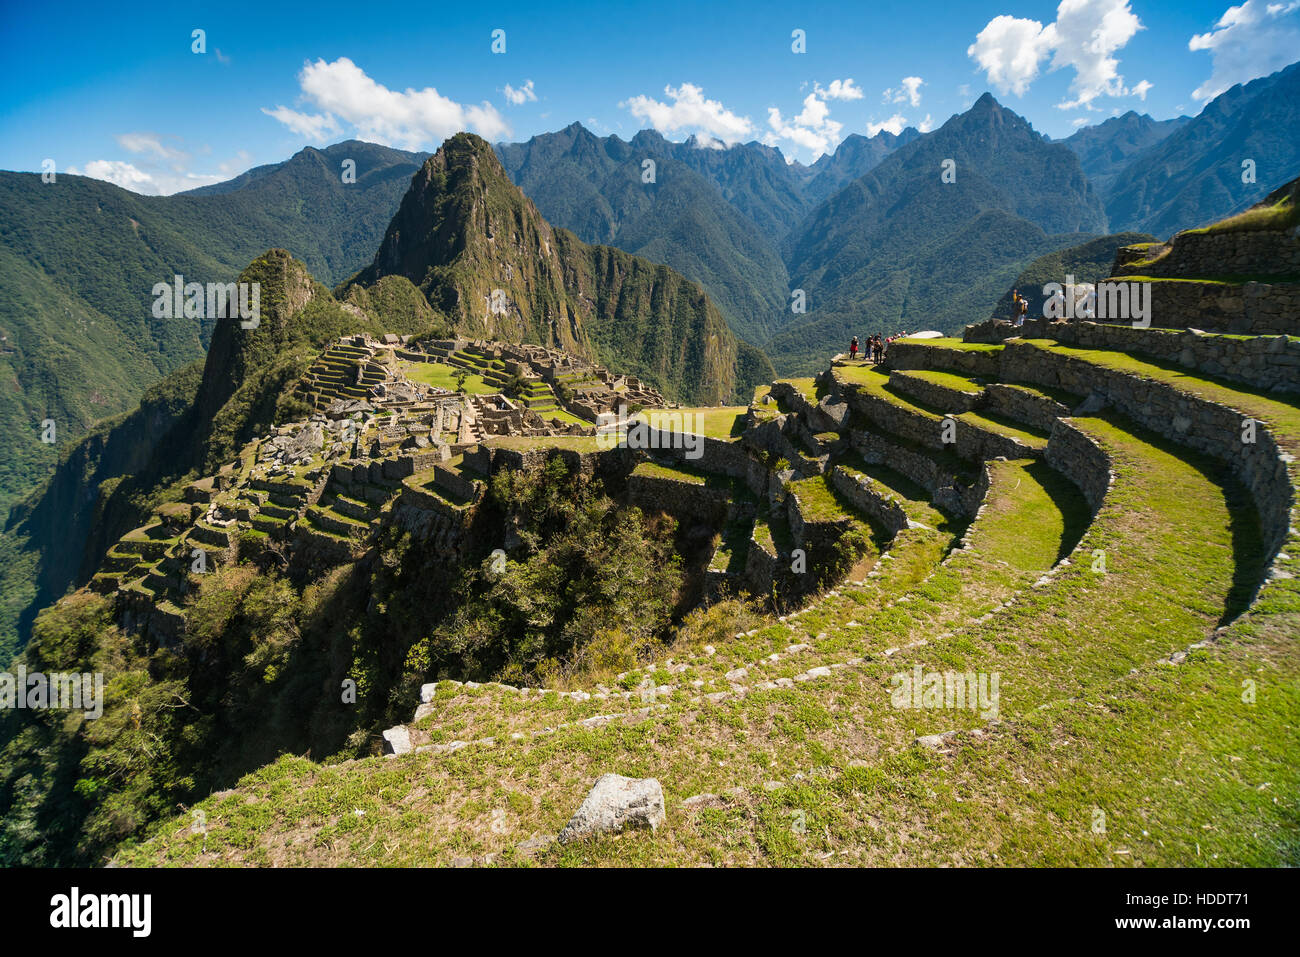 View of the Lost Incan City of Machu Picchu near Cusco, Peru. Machu Picchu is a Peruvian Historical Sanctuary. Terraces - Stock Image